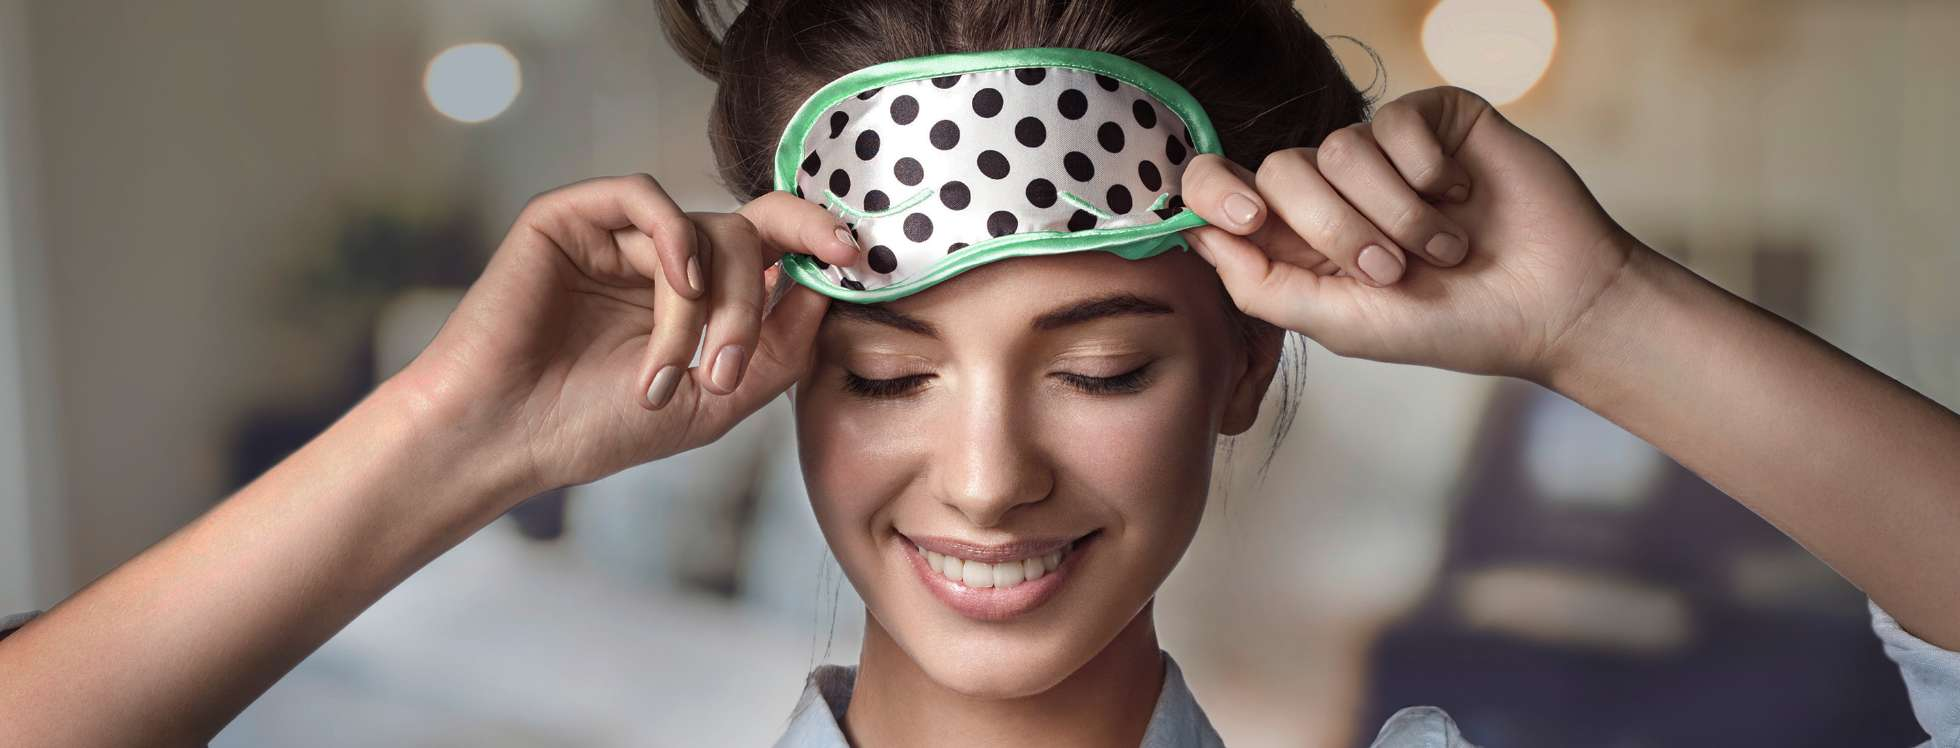 Smiling girl removing a spotty eye mask